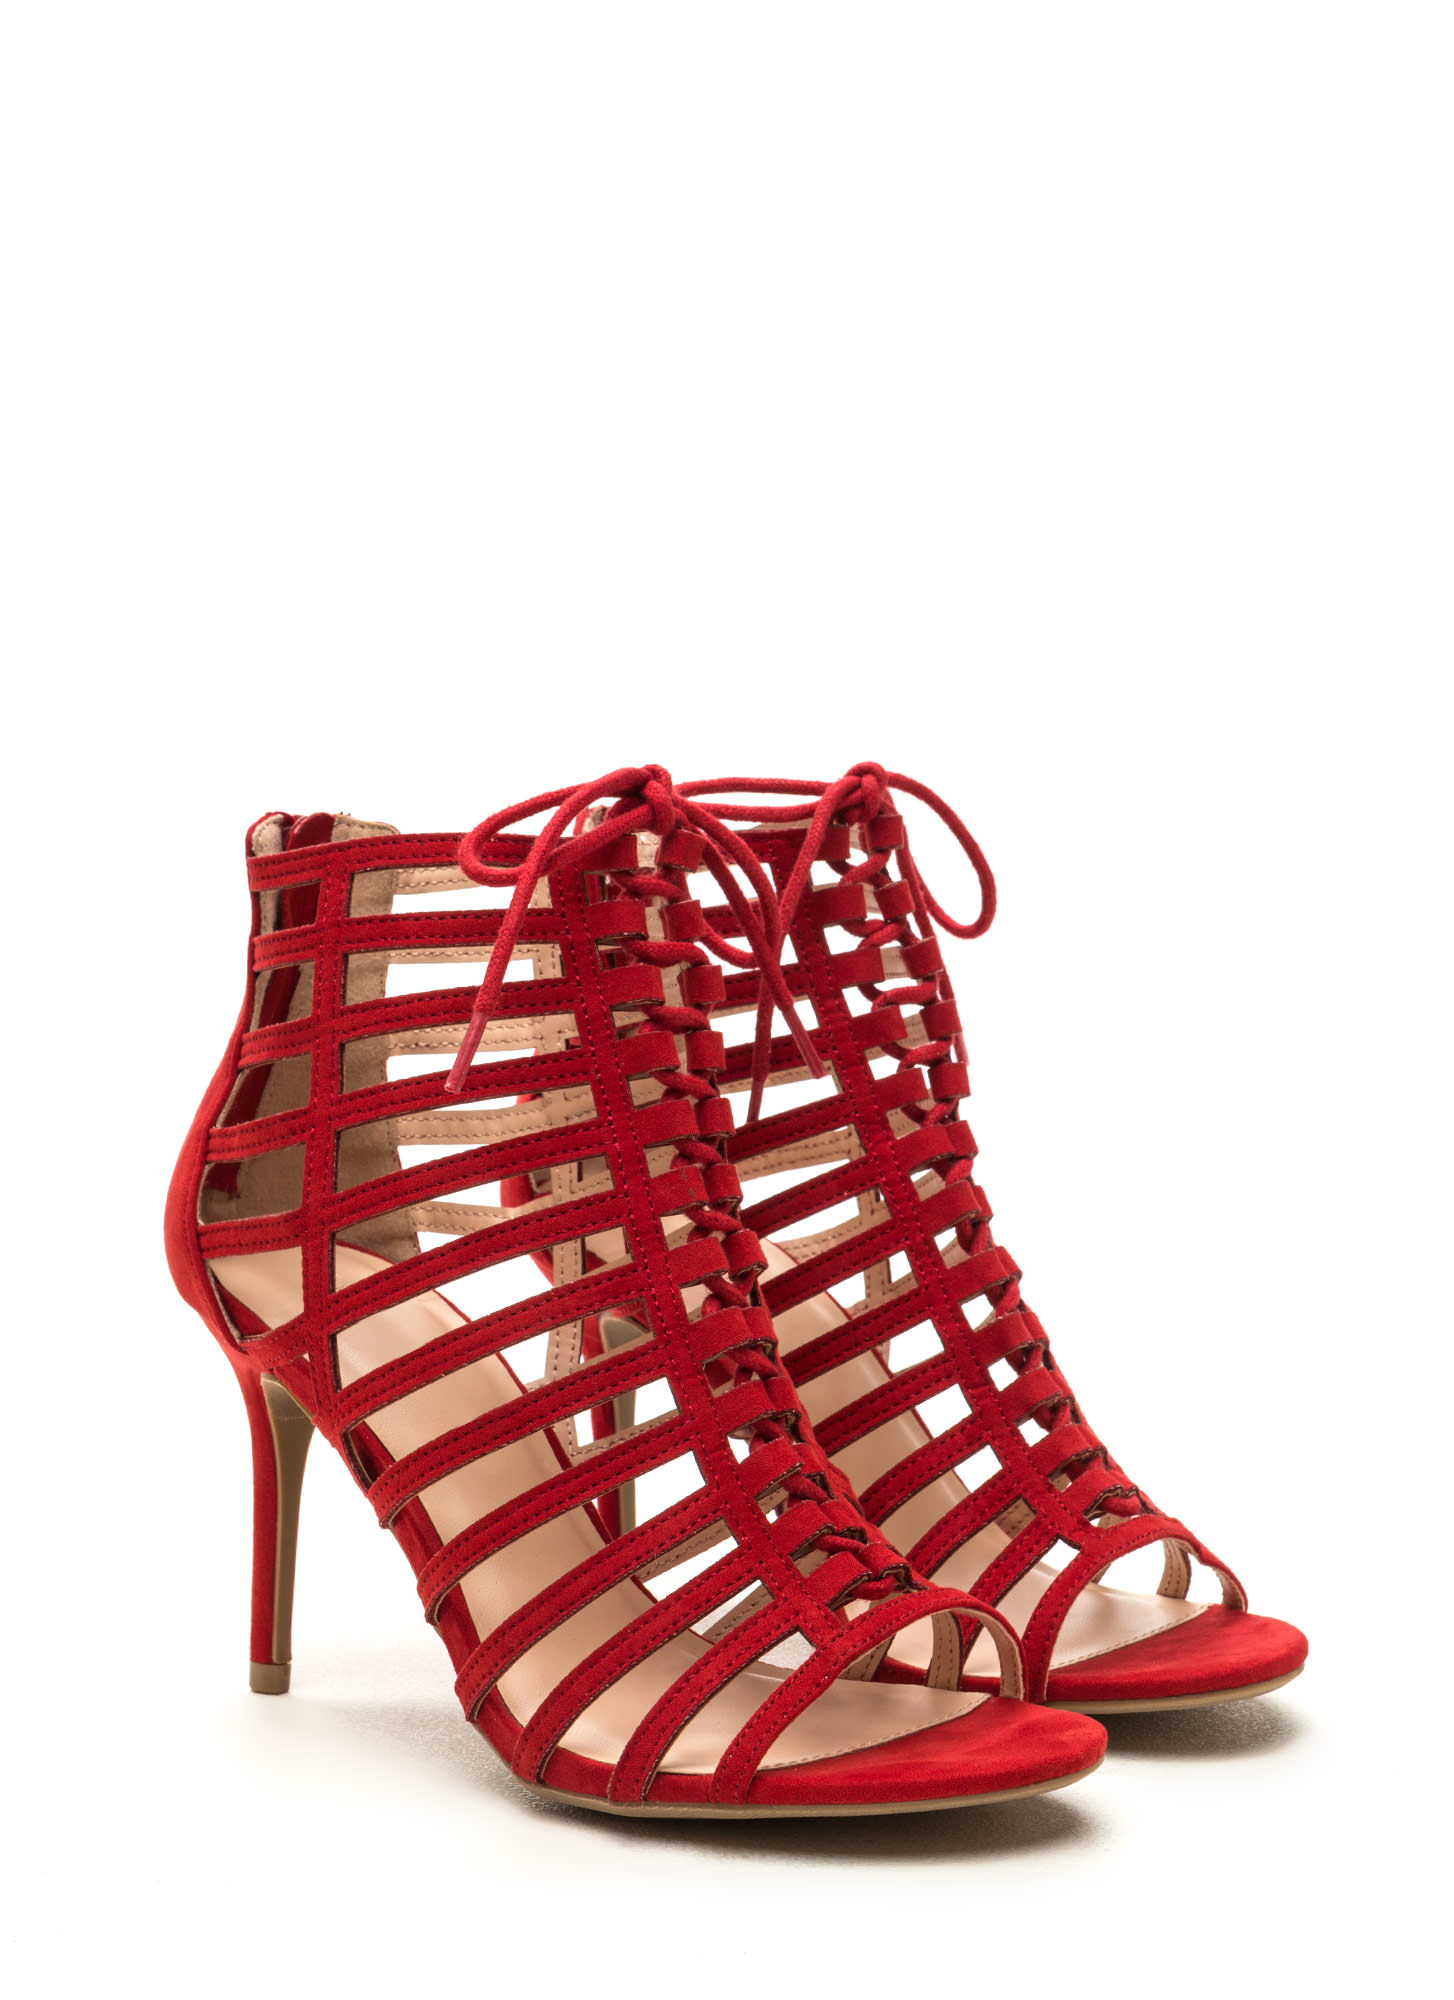 View From The Top Strappy Lace-Up Heels RED